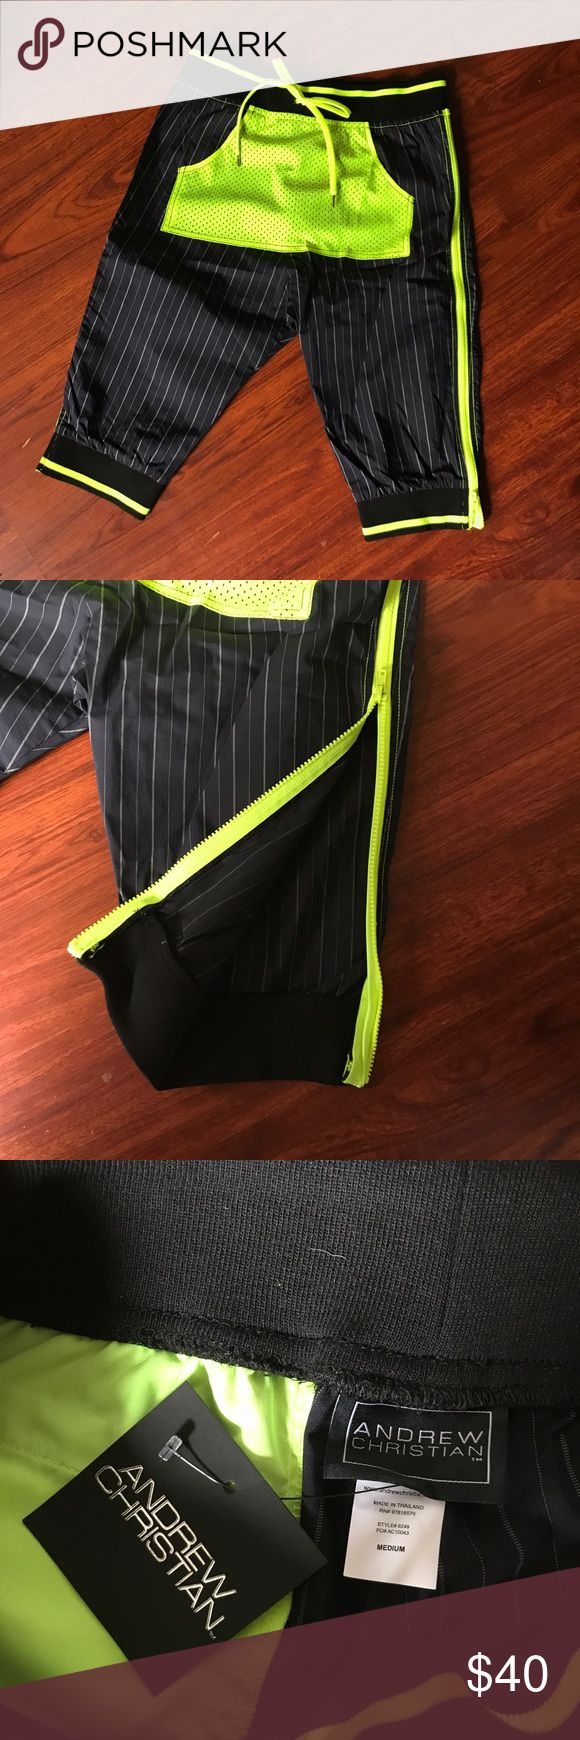 Selling this NWT Stylish Andrew Christian Joggers on Poshmark! My username is: pinheiroadam. #shopmycloset #poshmark #fashion #shopping #style #forsale #Andrew Christian #Other